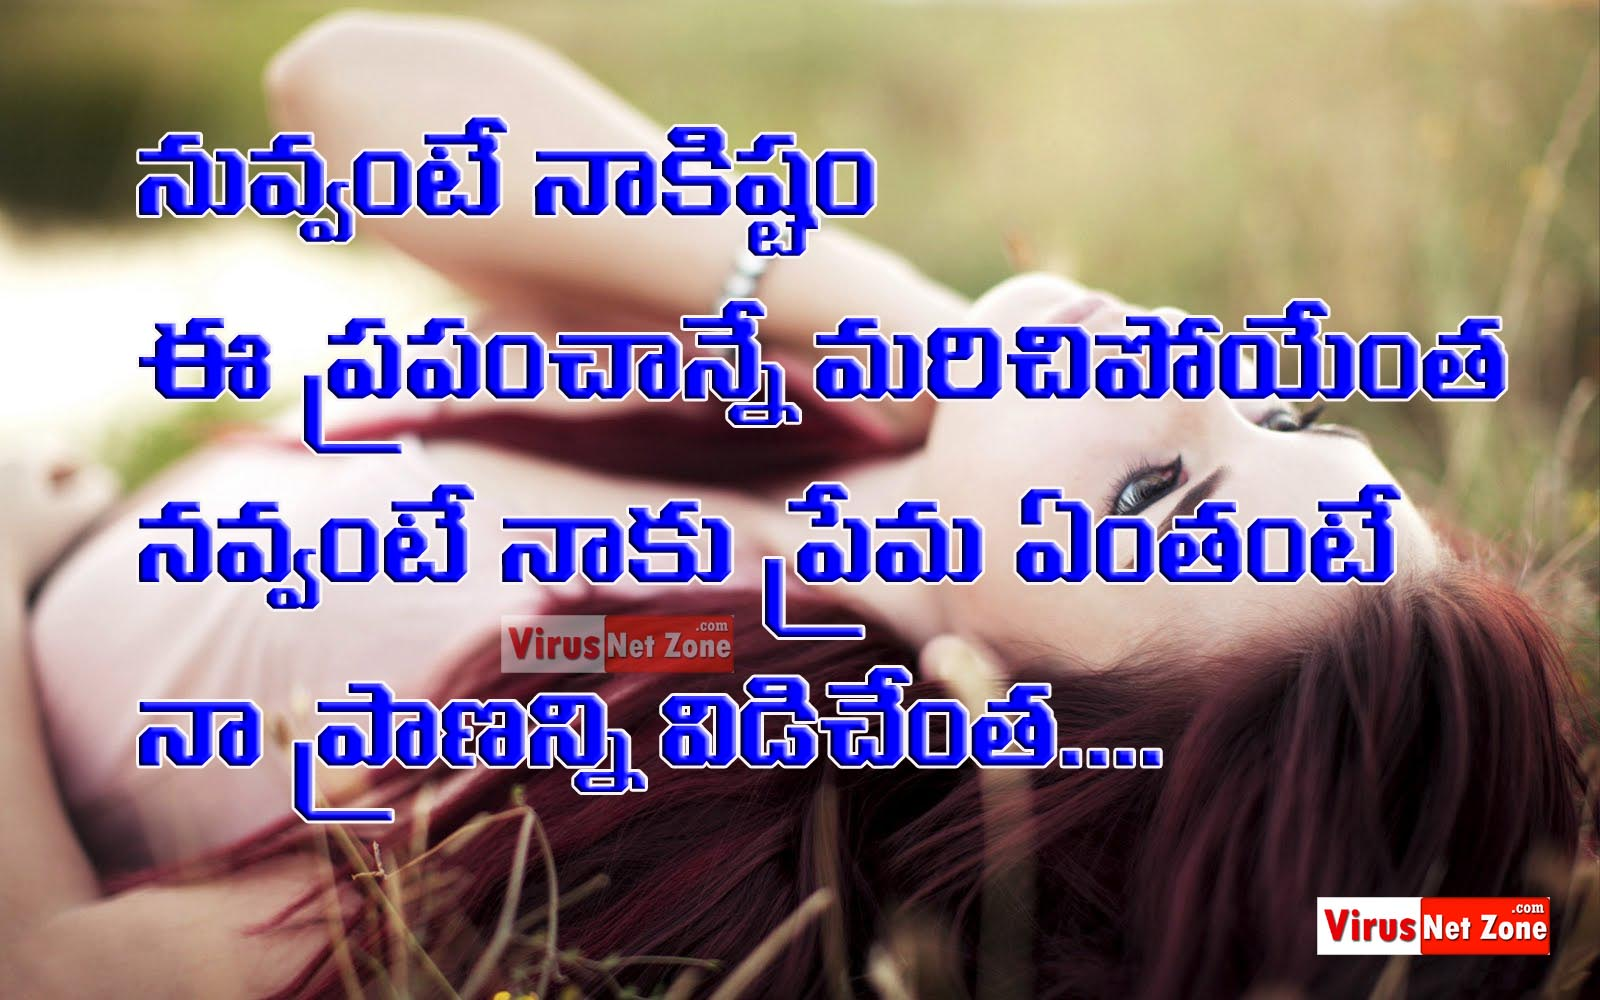 Telugu Love Quotes Amazing Real Heart Touching Love Quotes Images In Telugu  Virus Net Zone